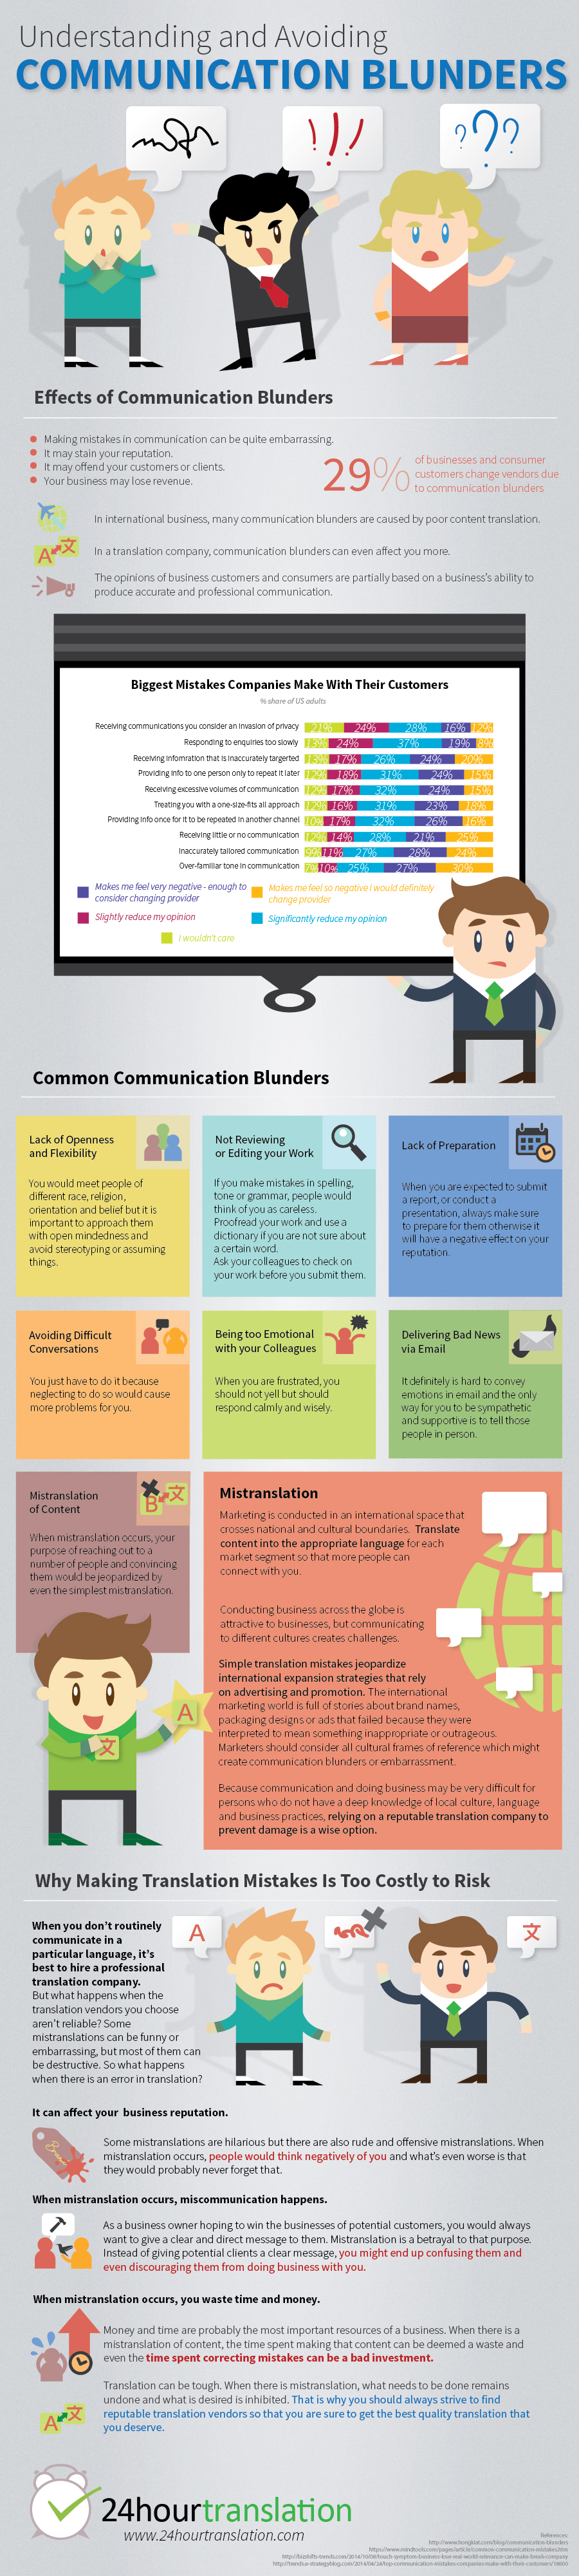 Communication Blunders Infographic